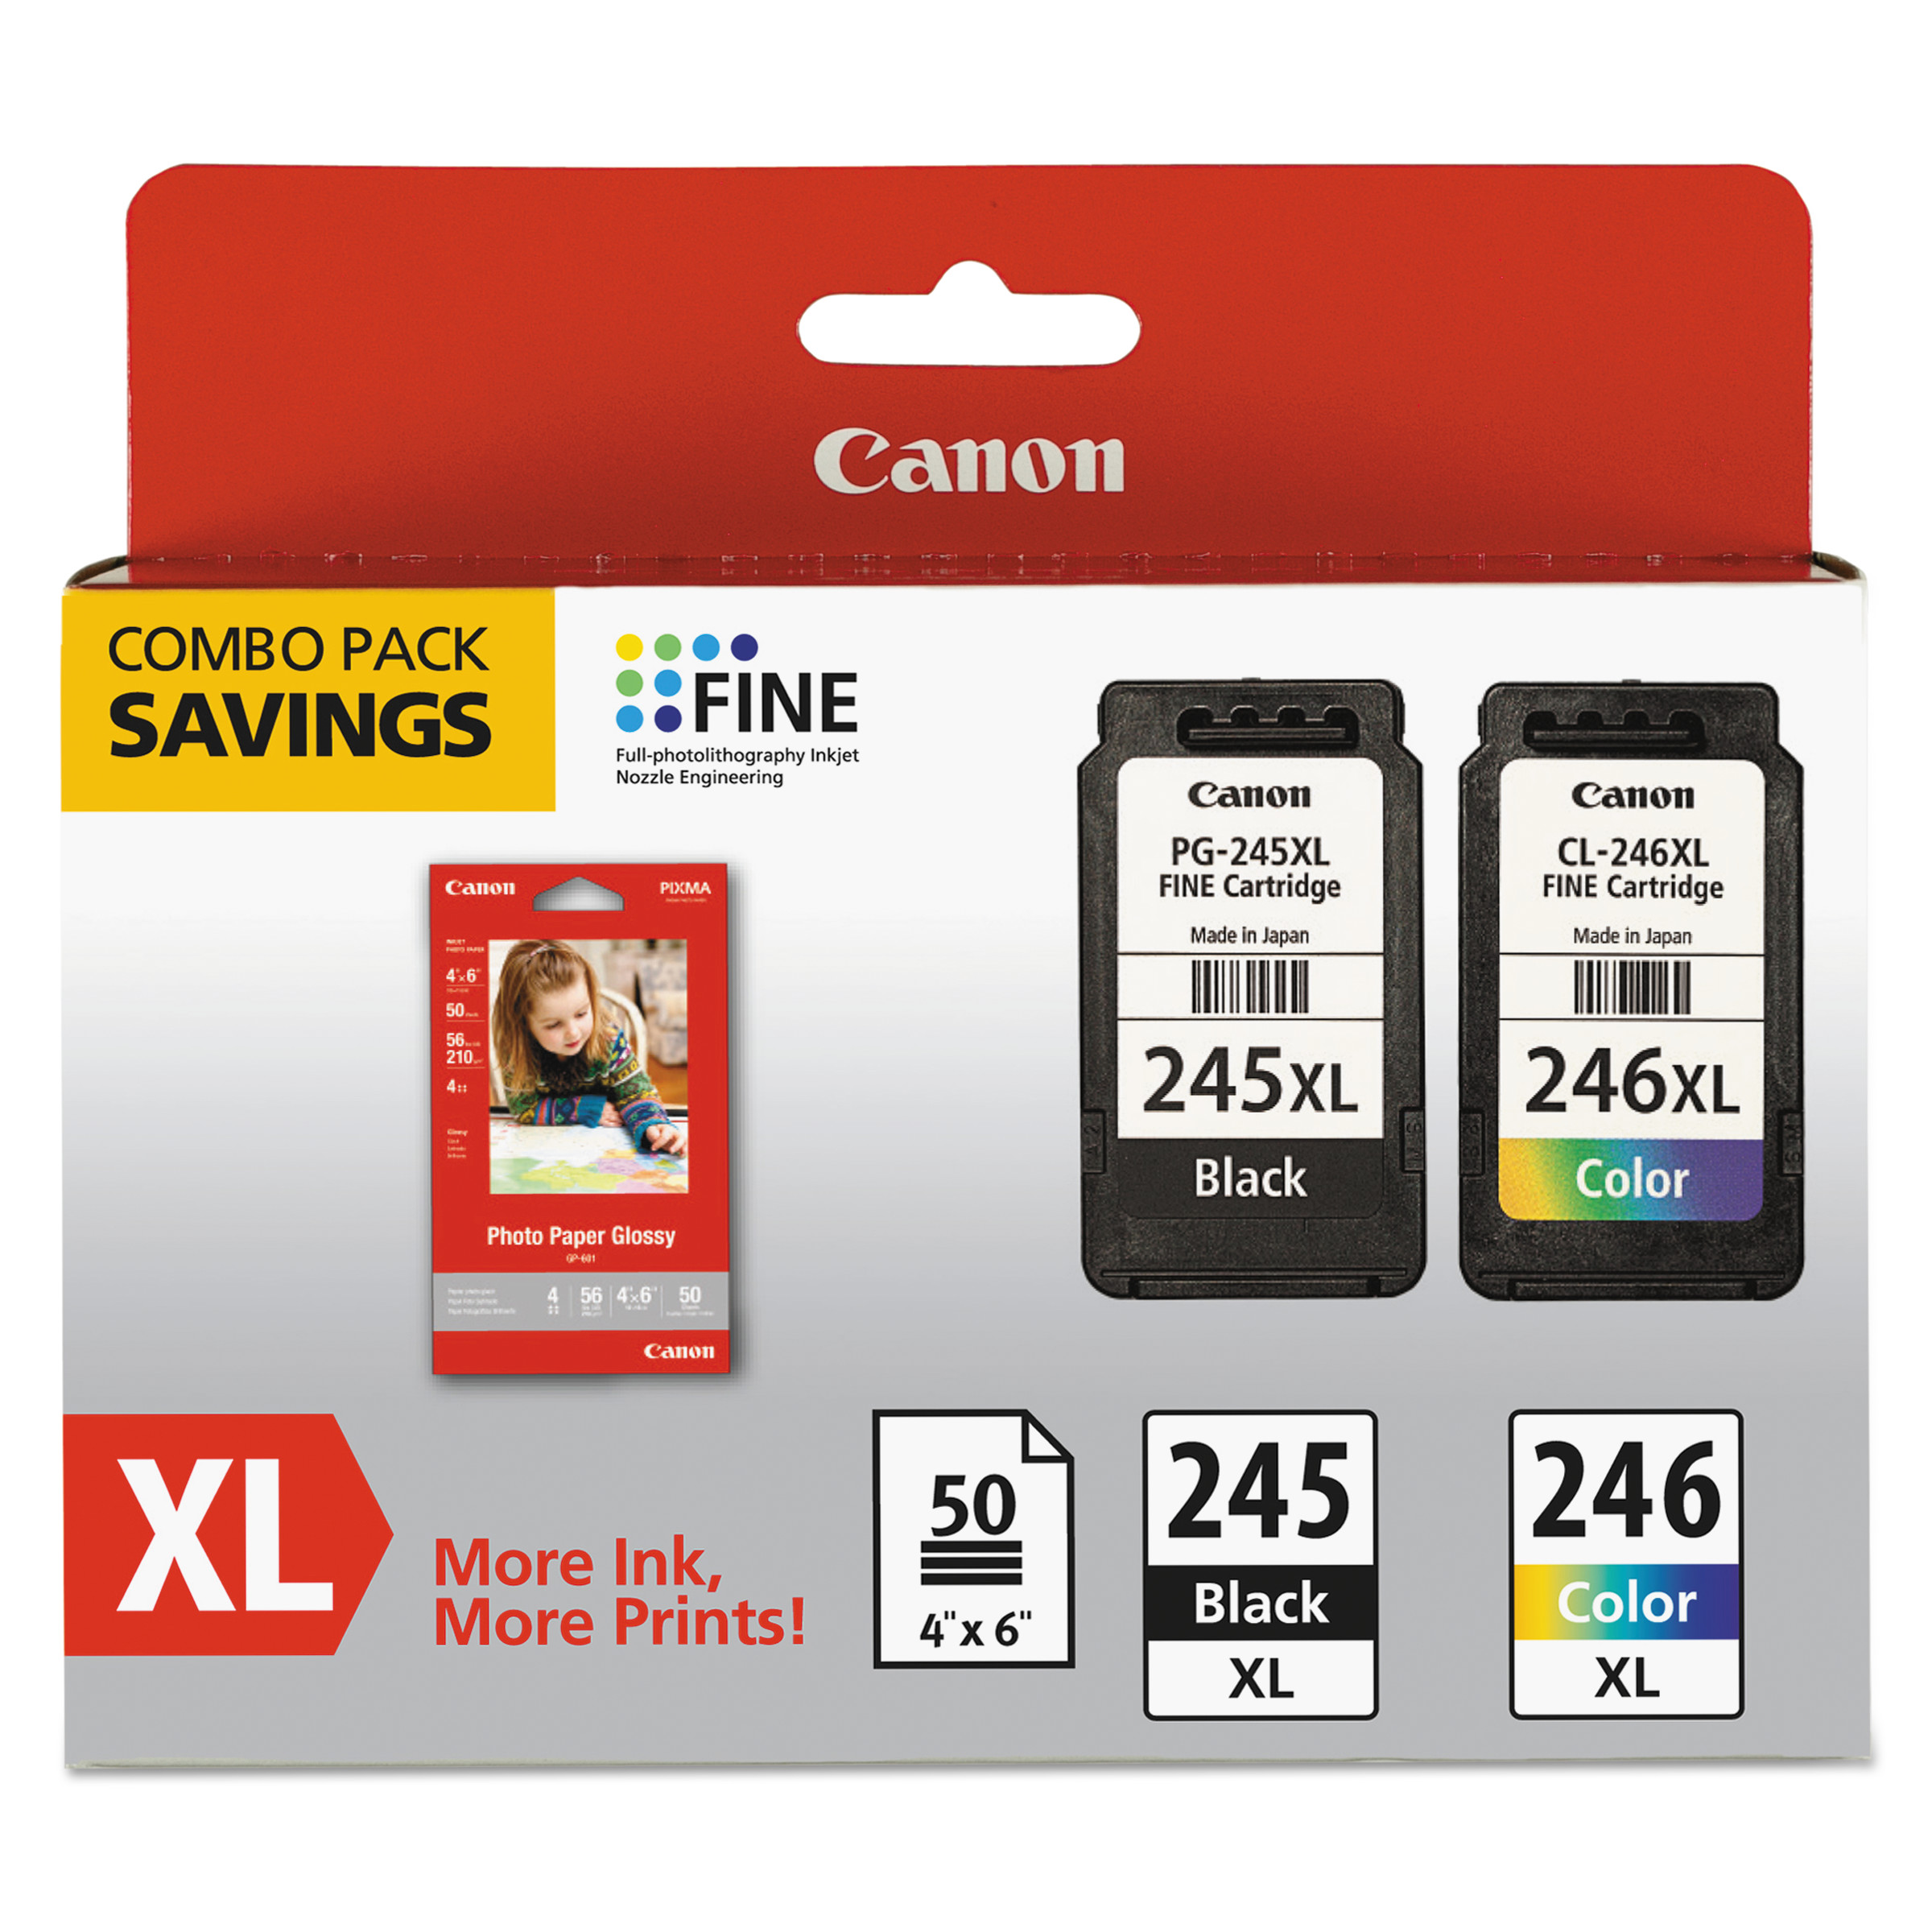 Canon PG-245XL/CL-246XL Ink & Paper Combo Pack, Black & Tri-Color